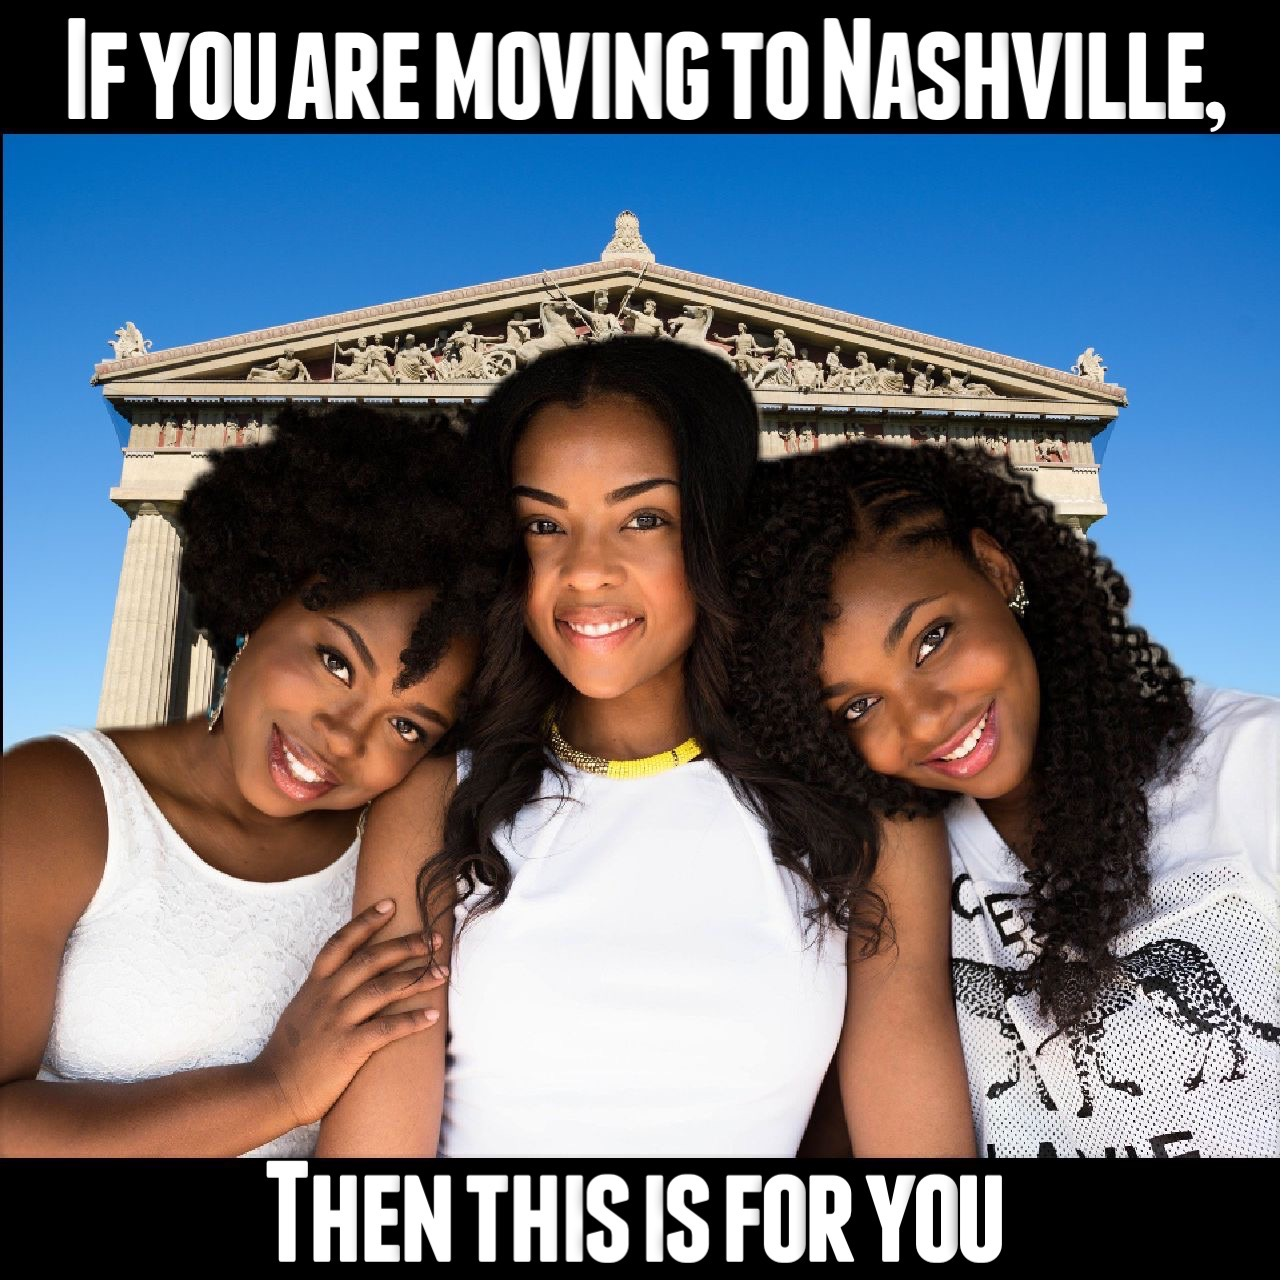 If you are moving to Nashville, this is for you